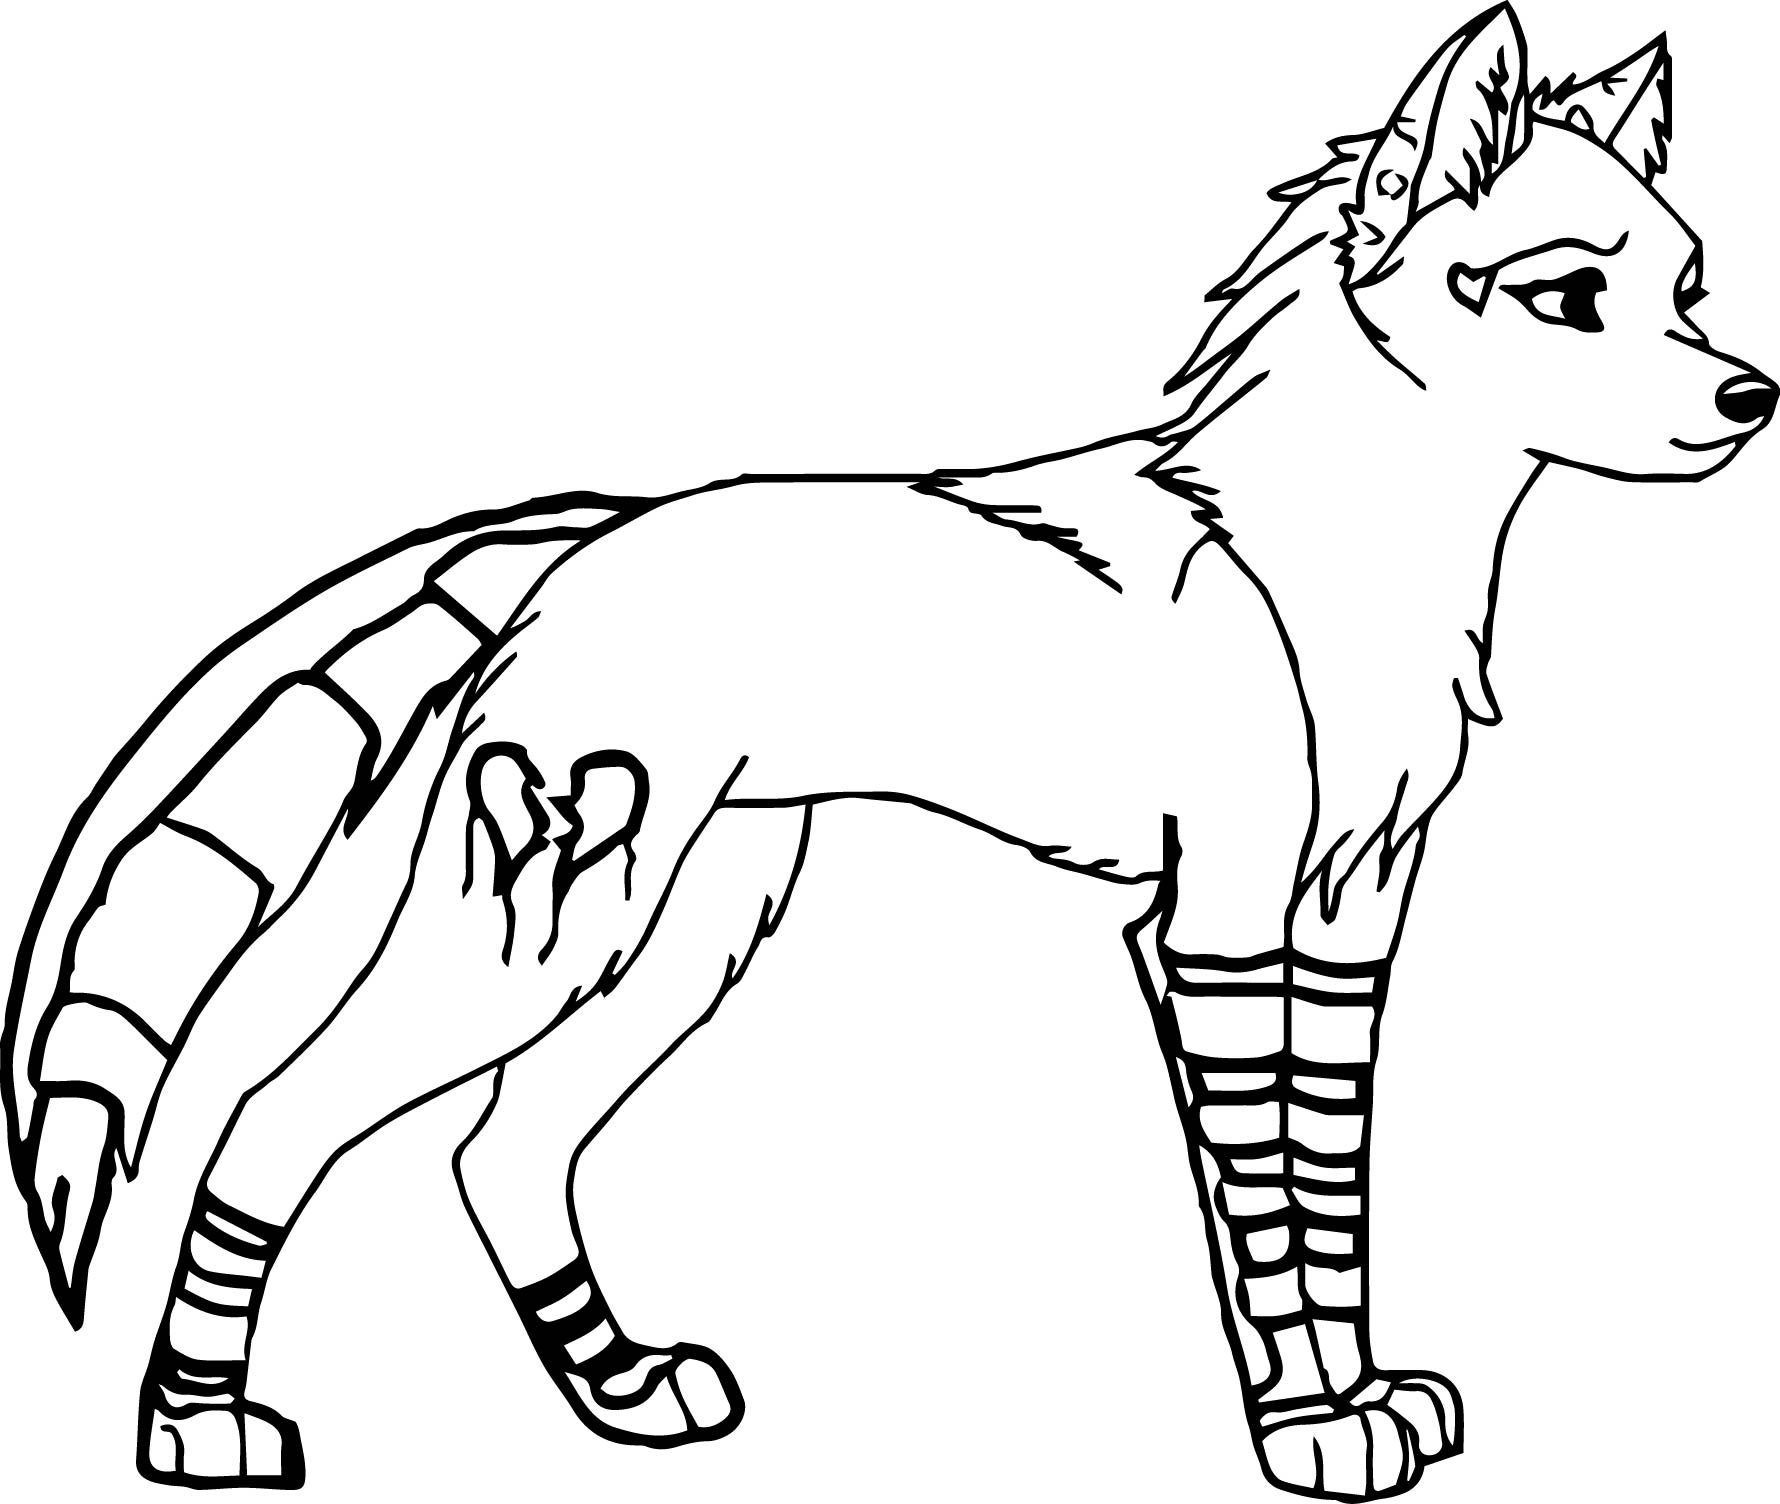 White Wolf clipart carnivore Coloring Wolf White drawings coloring